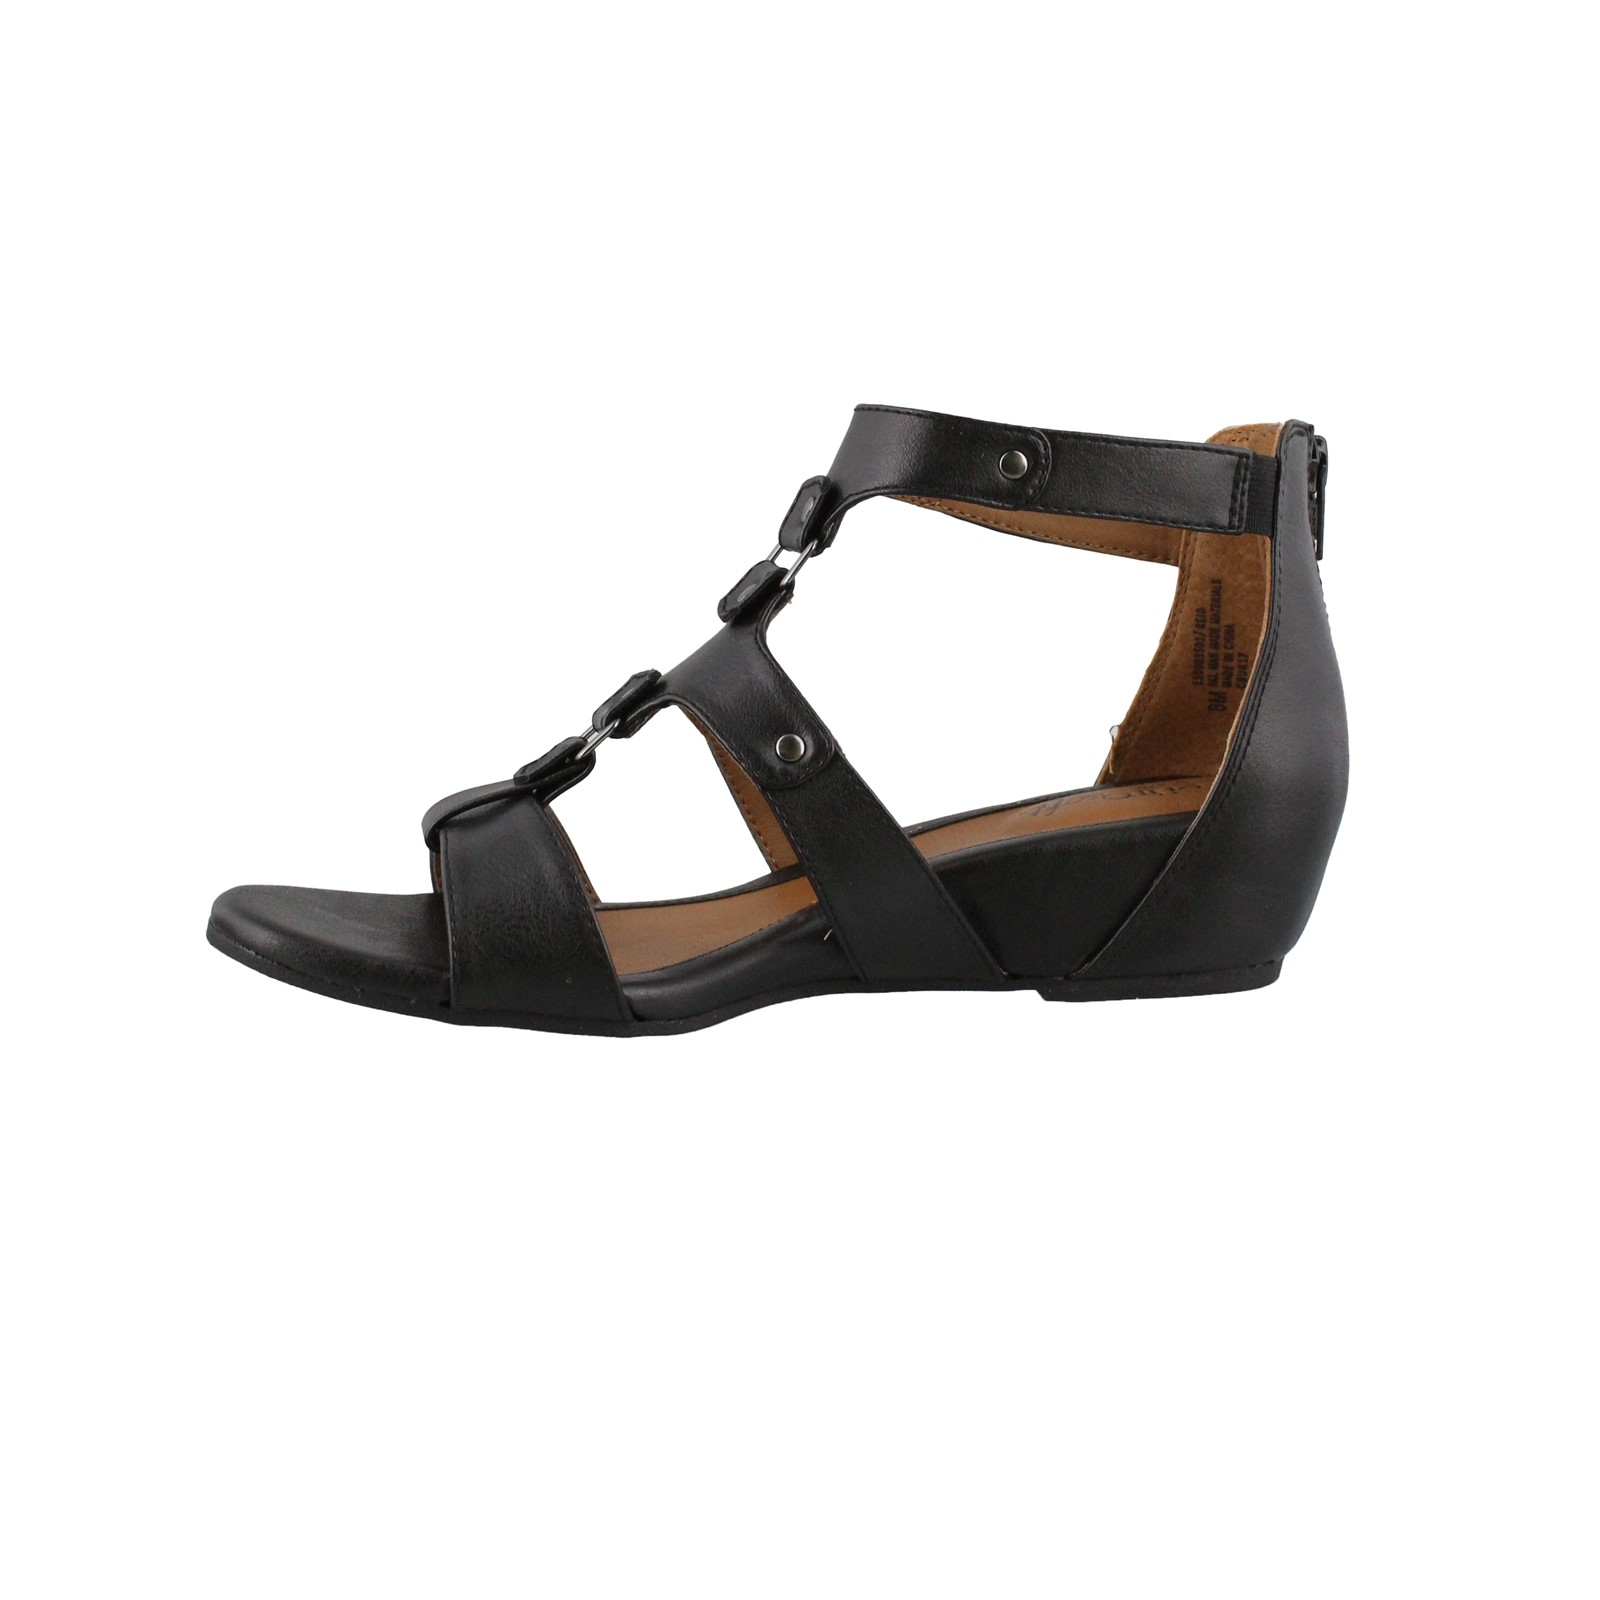 13959ab744 Next. add to favorites. Women's Eurosoft, Reid closed back sandals